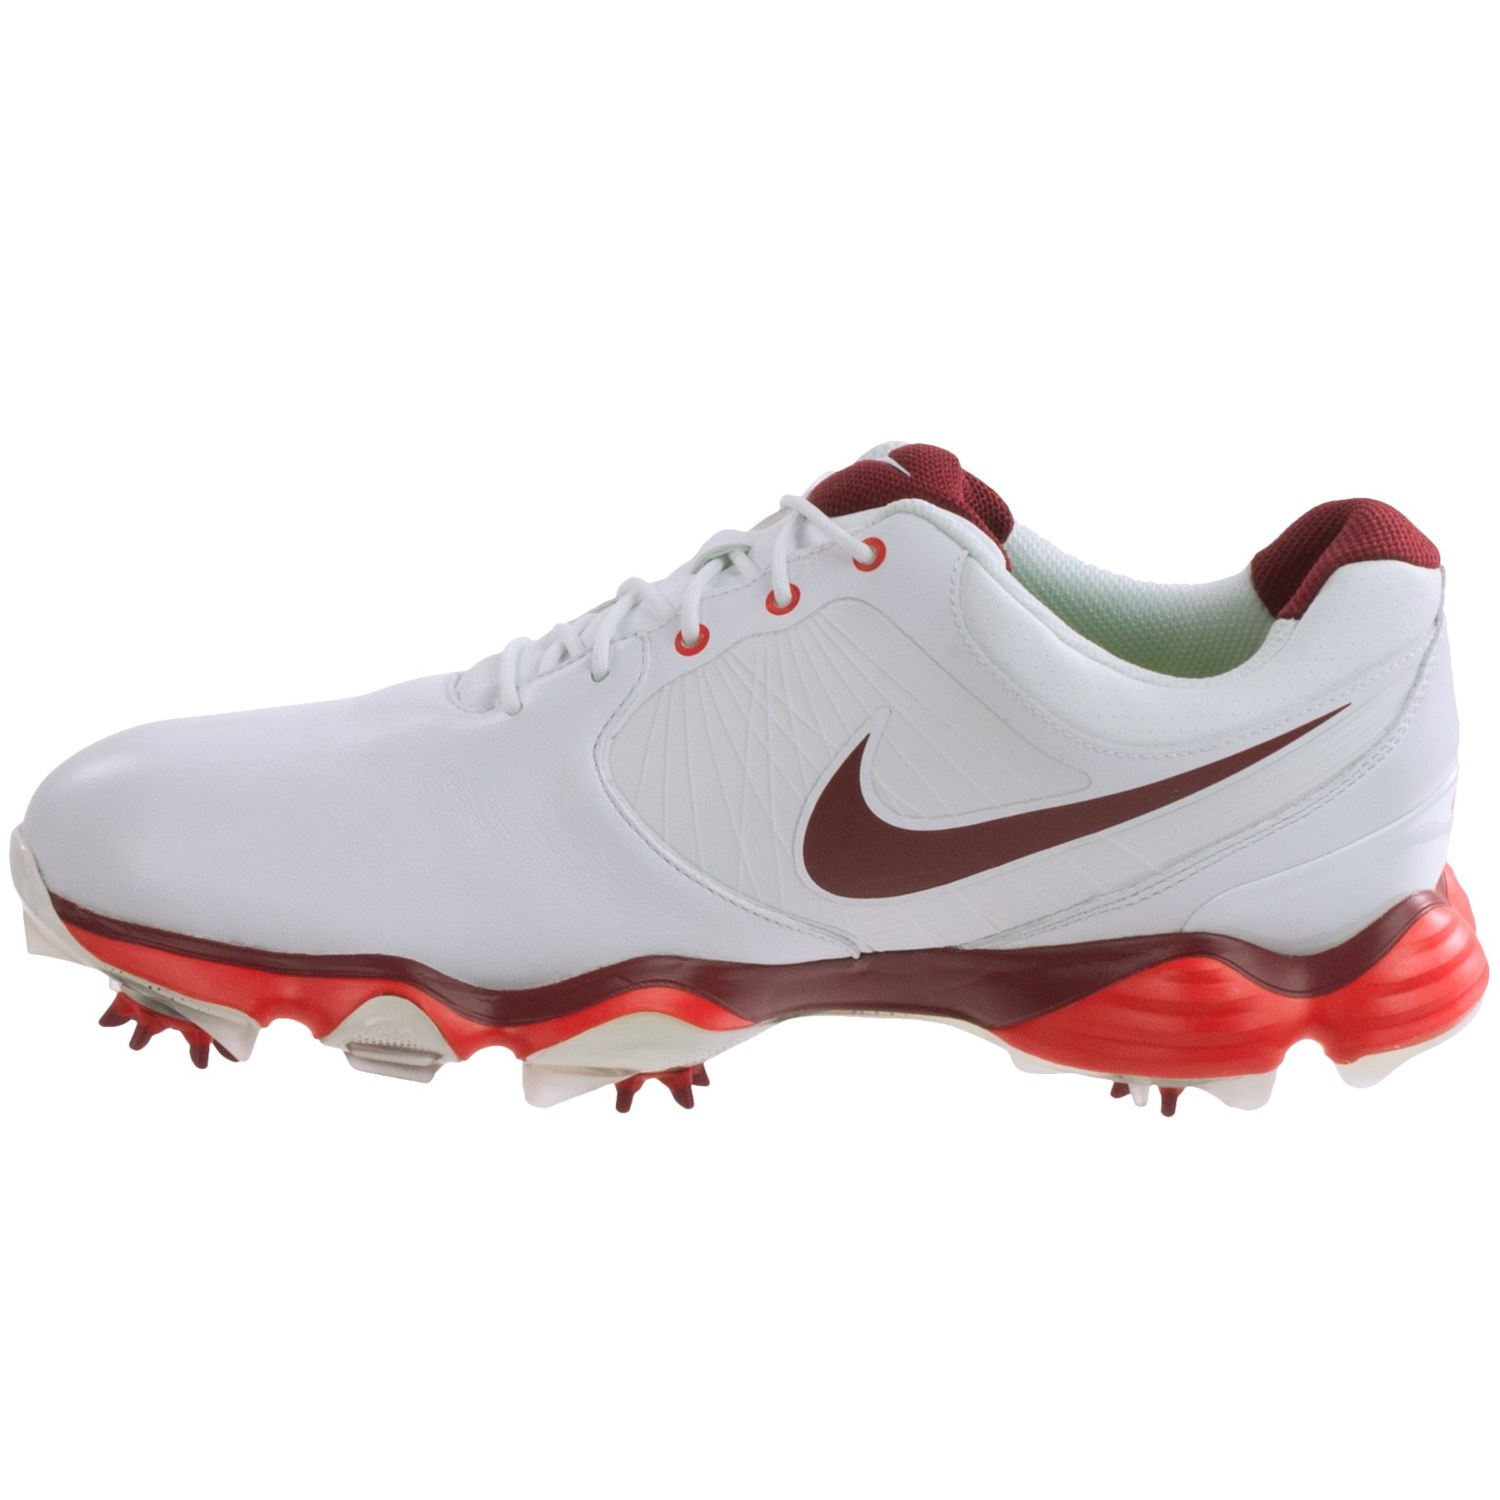 Best Place For Cheap Golf Shoes